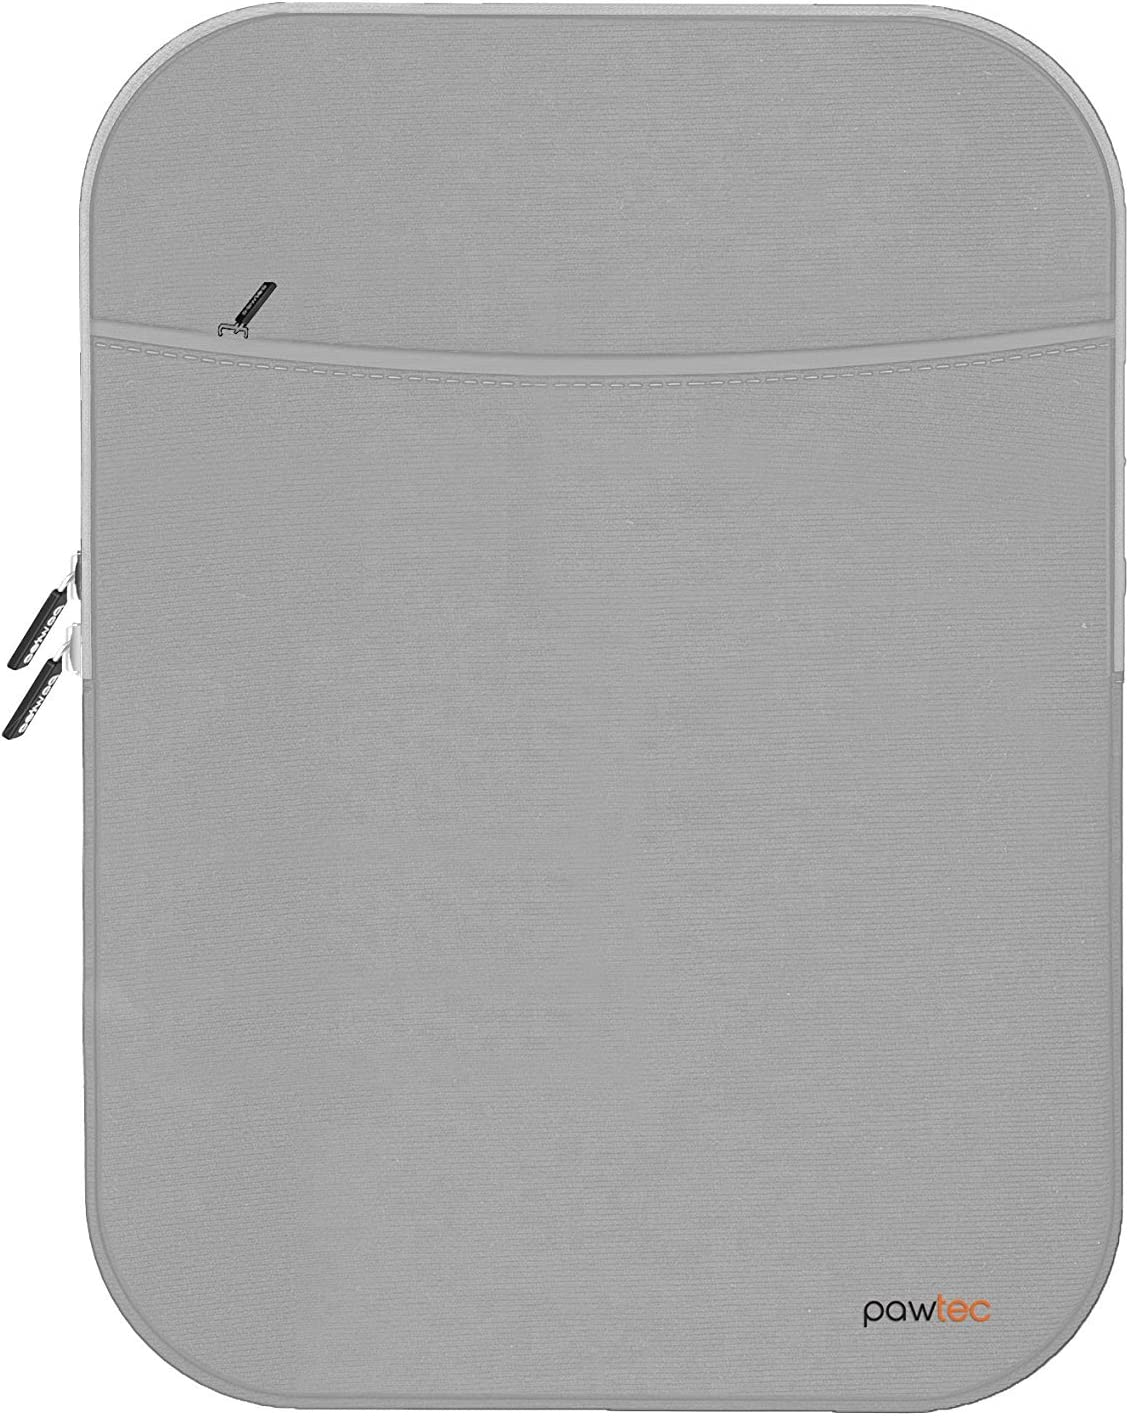 Pawtec Shockproof Neoprene Protective Storage Carrying Sleeve Case - Compatible with Apple 12.9 Inch iPad Pro Retina Tablet - with Extra Storage Pocket for Accessories and Wall Charger (Silver)